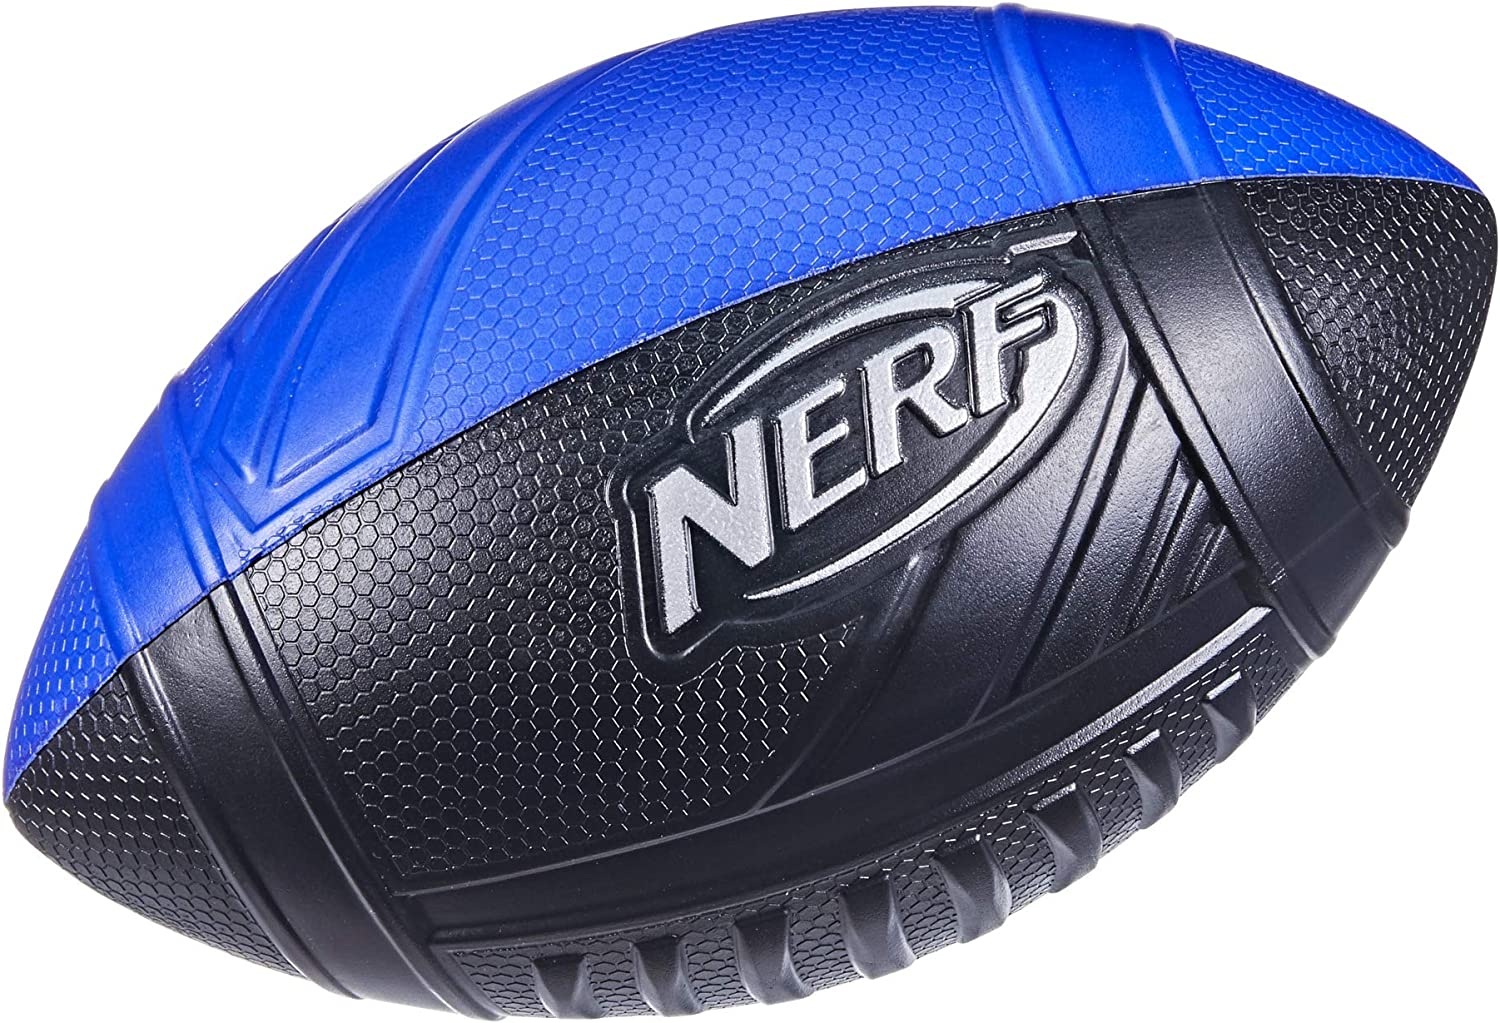 Nerf Pro Grip Football -- Classic Foam Ball -- Easy to Catch and Throw -- Great for Indoor and Outdoor Play -- Blue